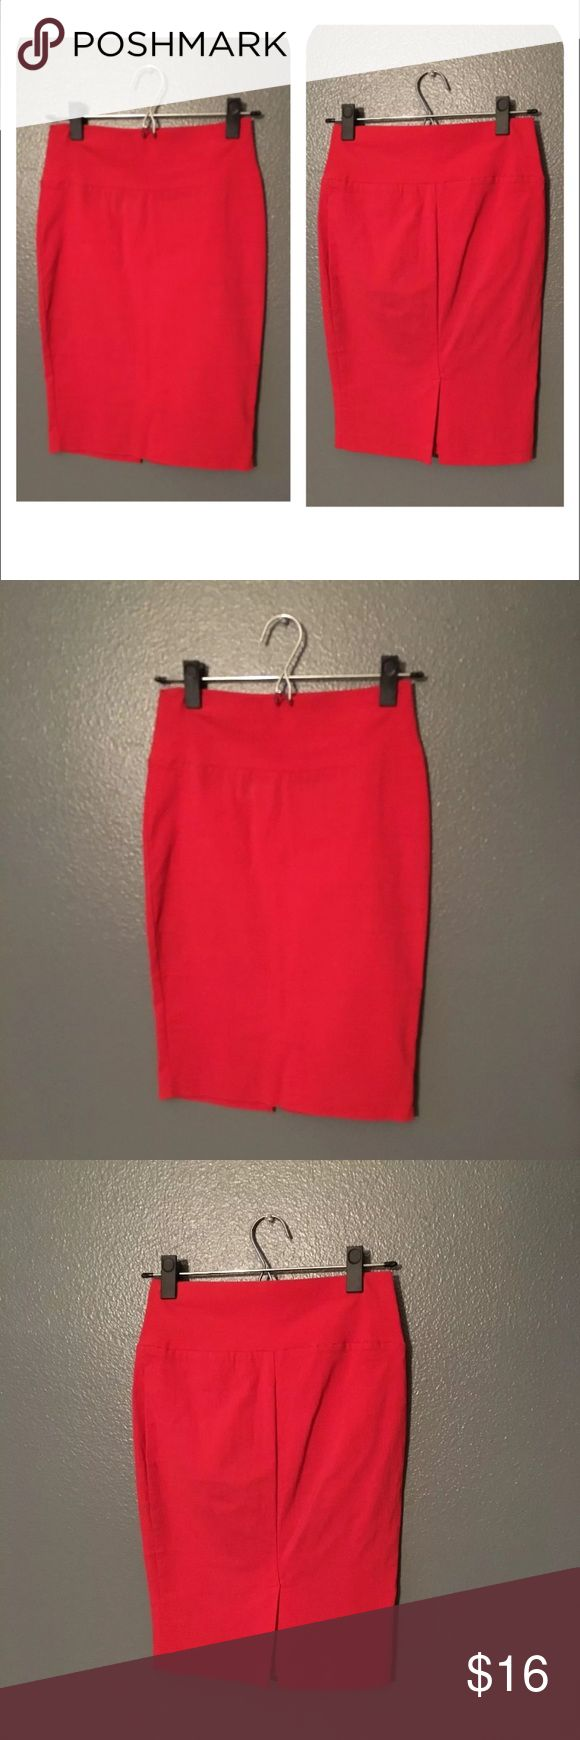 """Coral high waisted, hip-hugging pencil skirt😉 Vibrant coral color definitely catches attention! It looks red in the photo because of the lighting, but it's actually more of an orangey pink color. The structured and stretchable shape of the skirt hugs the waist and hips perfectly. Has a 5.5"""" slit in the back, full skirt length is 21"""". Feel free to ask any questions and make an offer :) Skirts Pencil"""